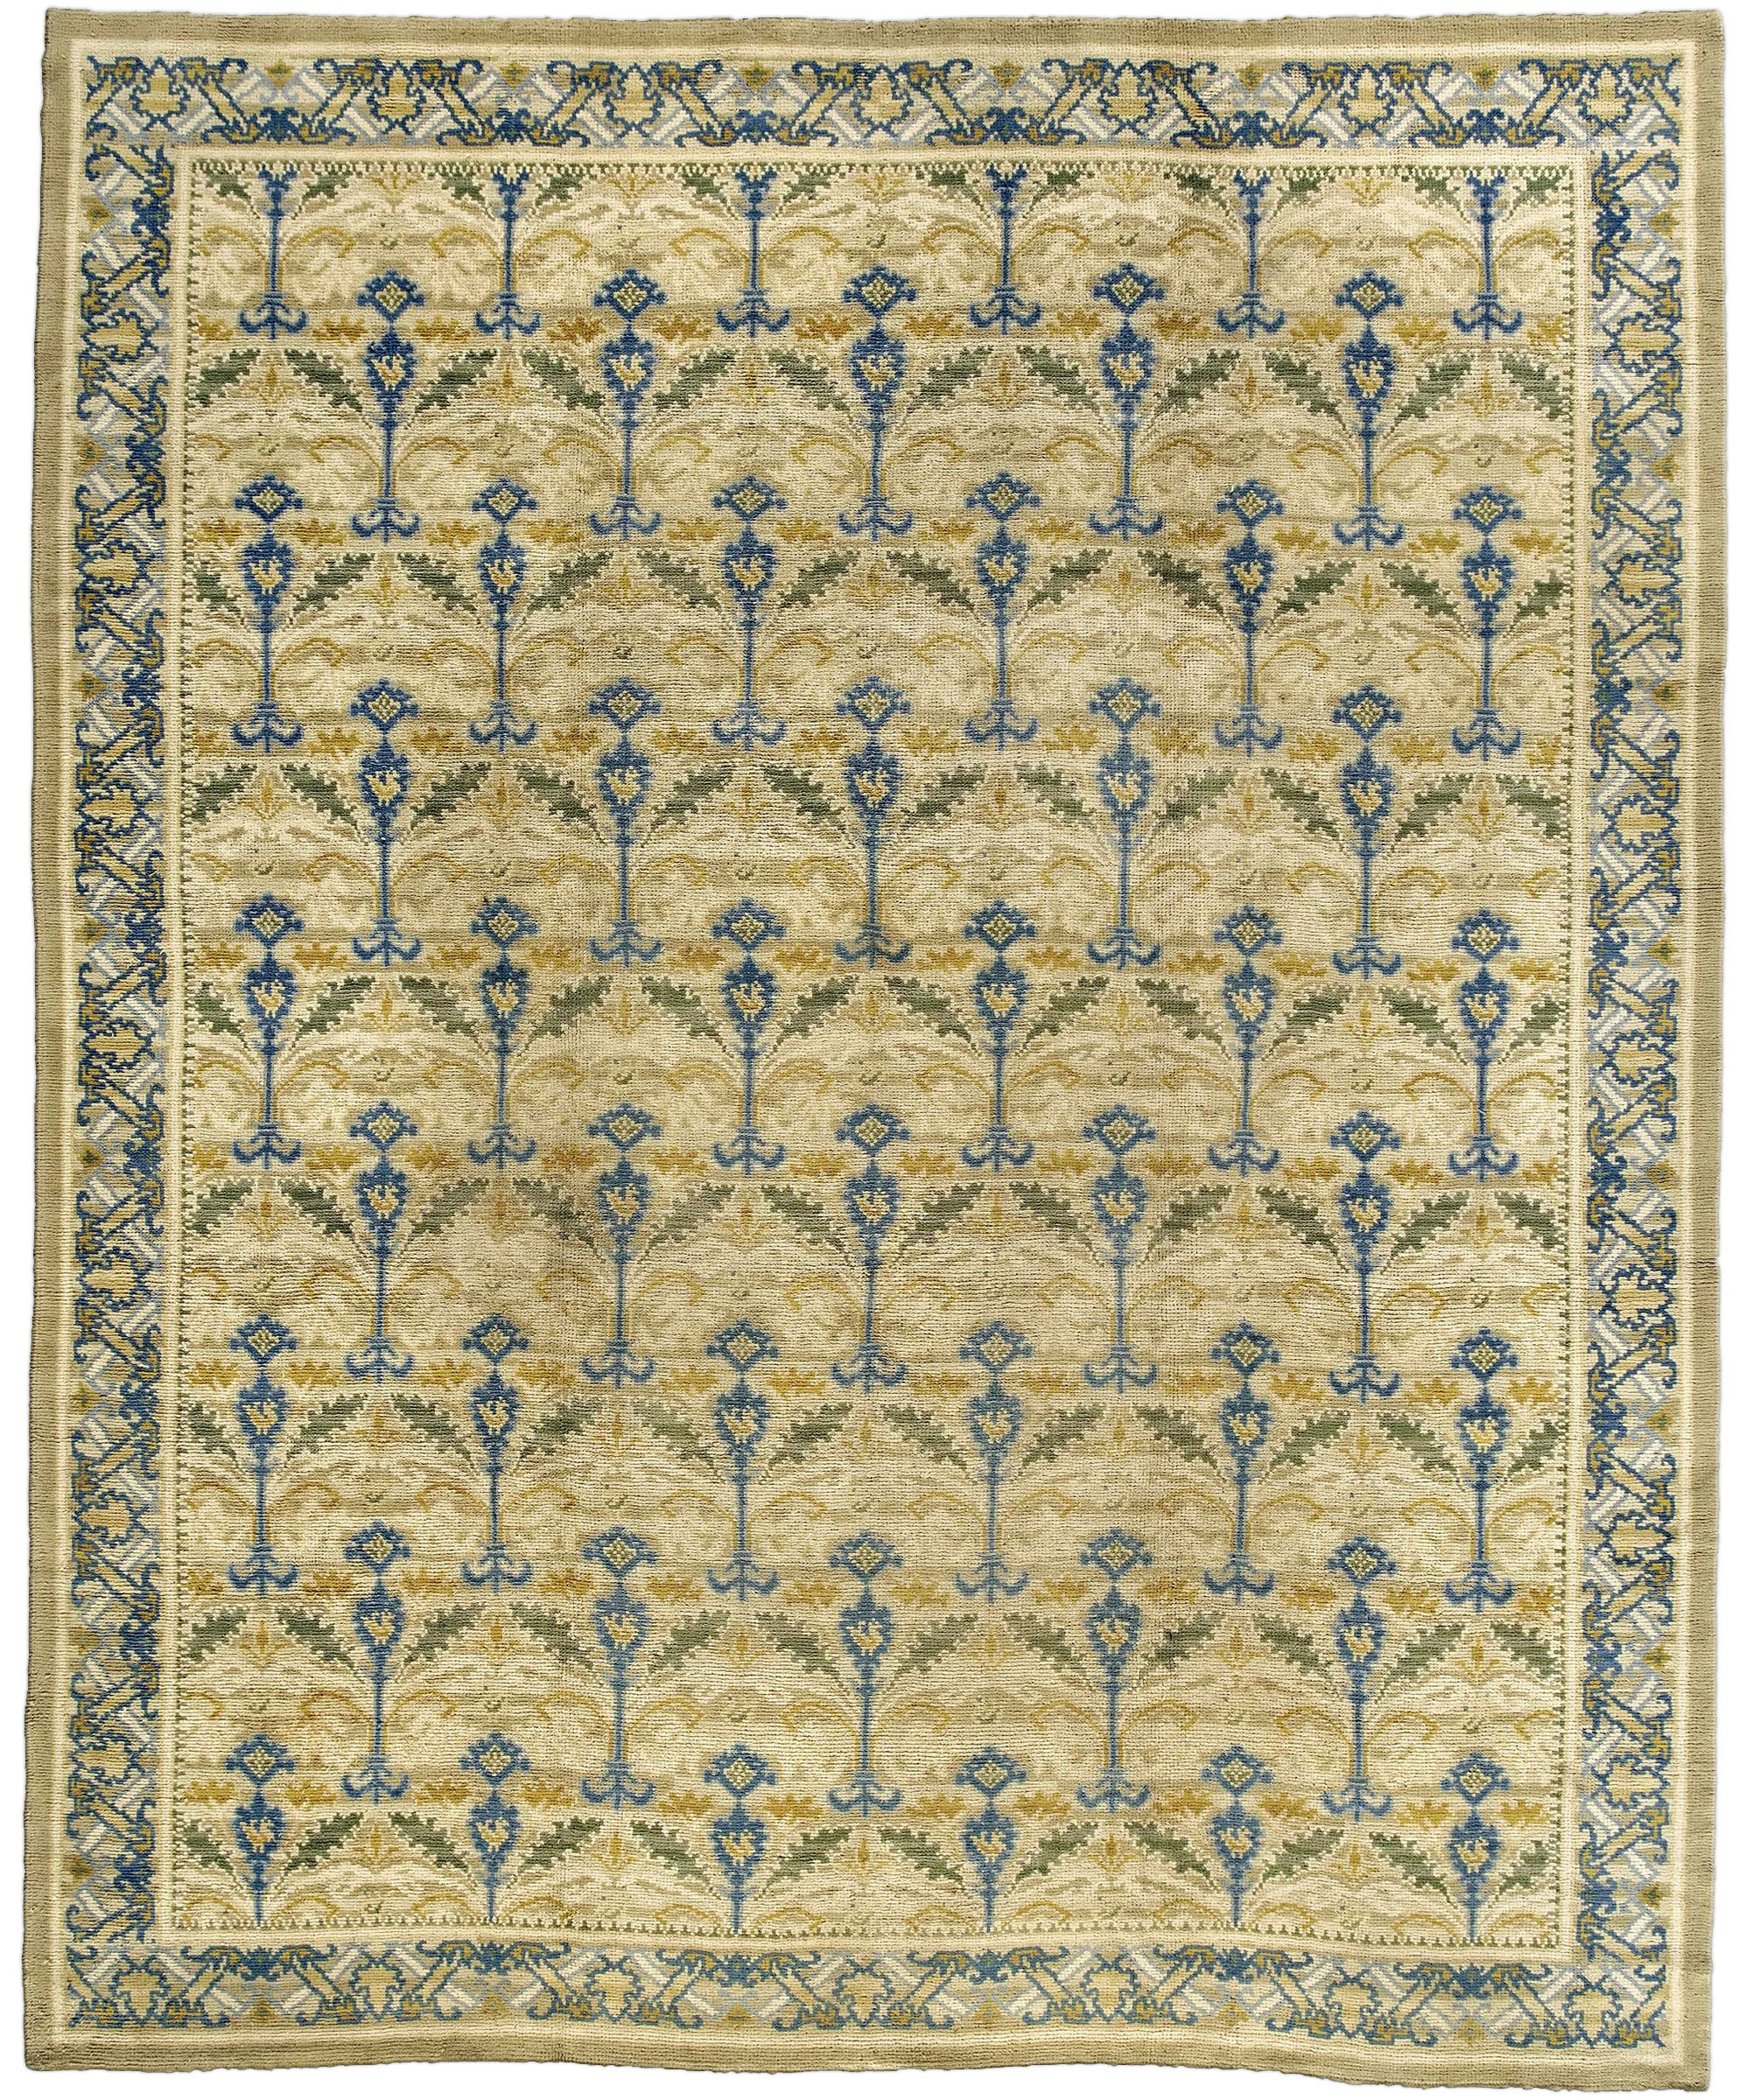 Spanish Rugs: Area Carpets For Sale (Antique Vintage Style